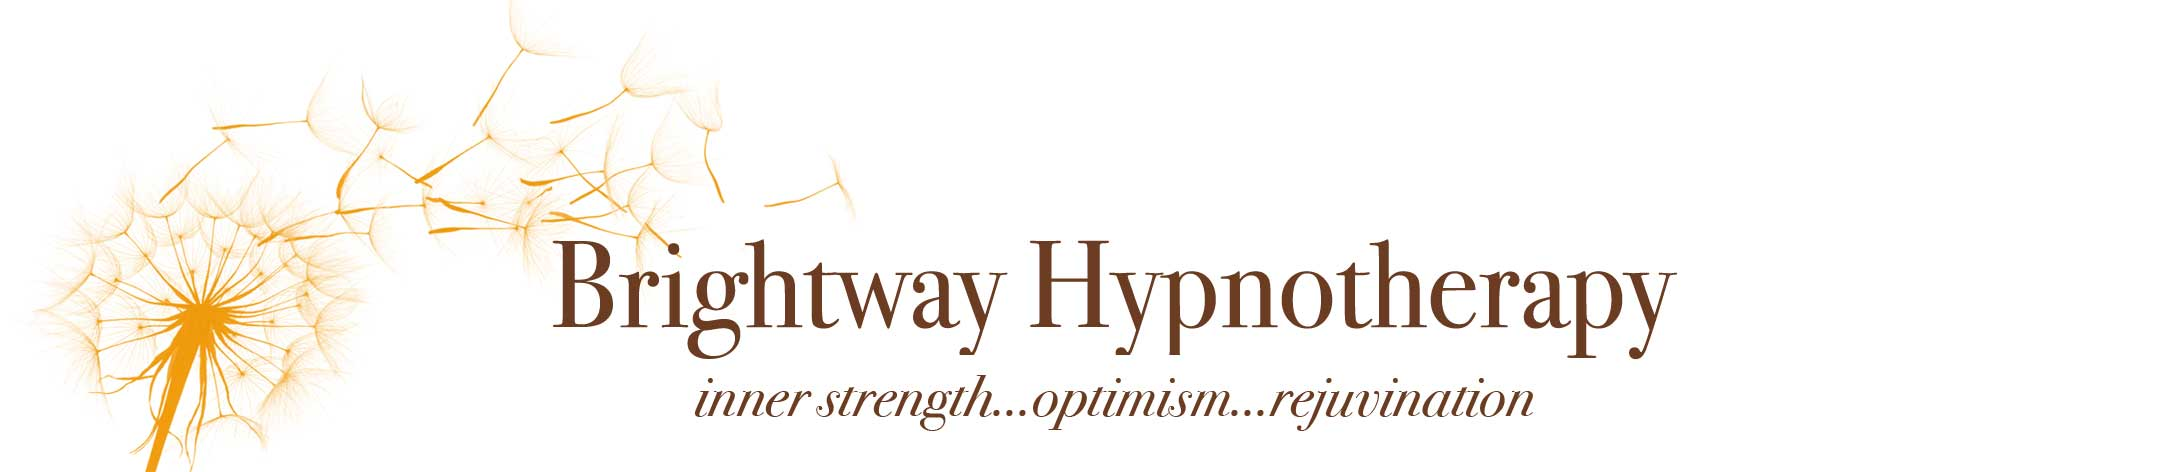 Brightway Hynotherapy